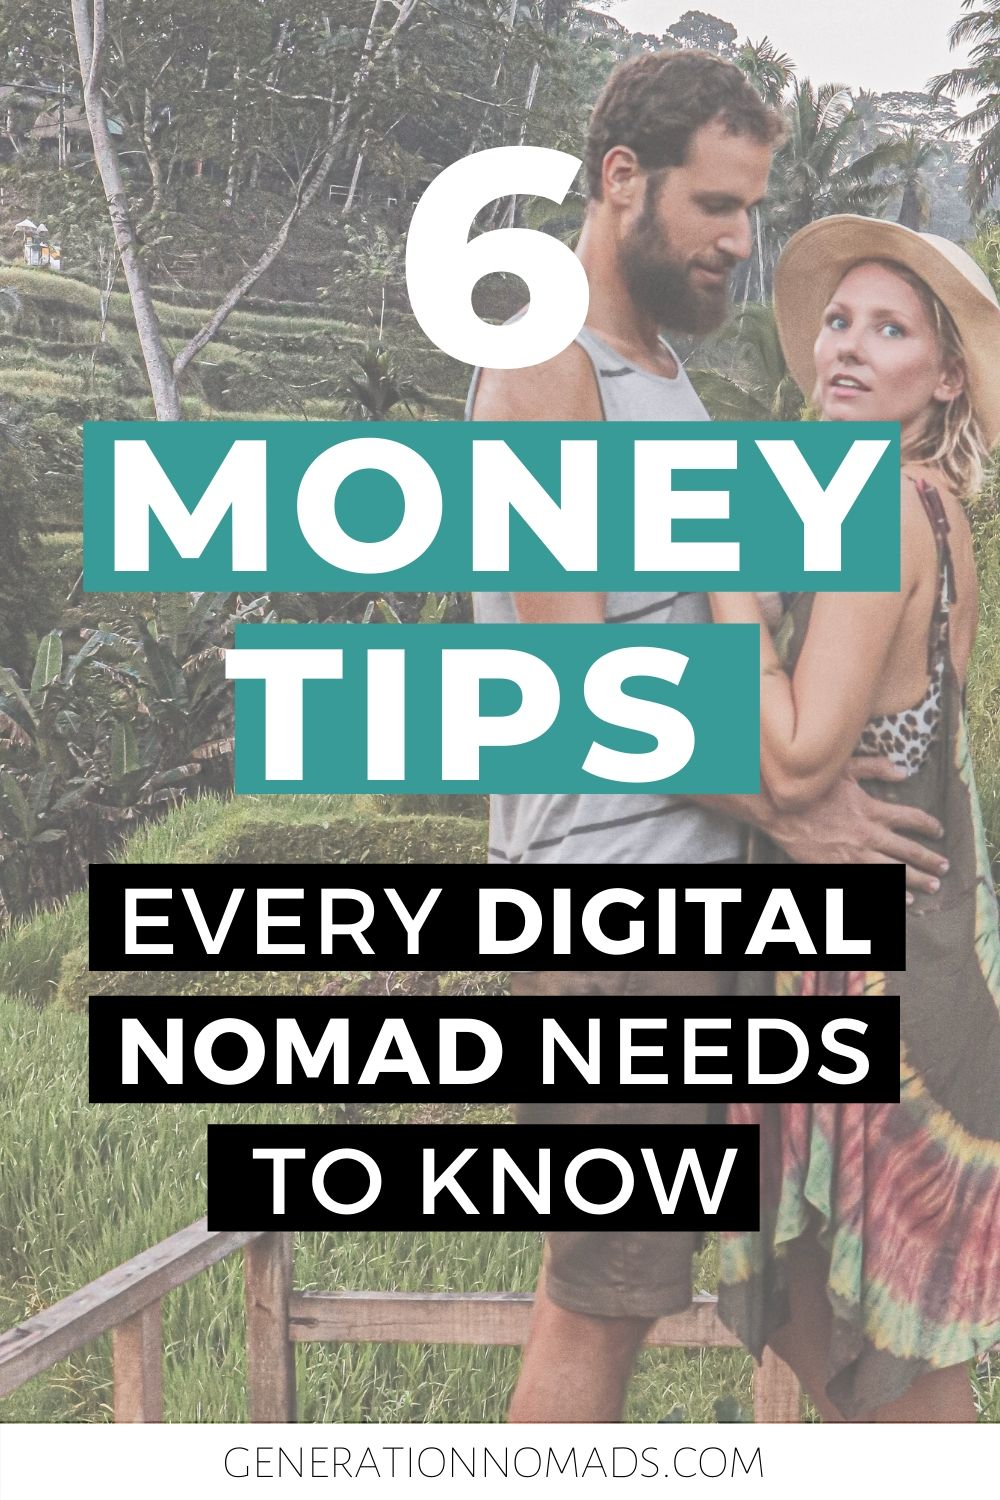 Do you want make traveling your lifestyle but worry about money? We feel you! Before we quit our jobs and decided to become digital nomads, we read up on all money saving tips we could find, learnt about passive income, and how to create a travel budget. If you wonder how to become a digital nomad and not go broke, click to read these 6 Money Tips for every digital nomad that we wish we knew 1 year ago!